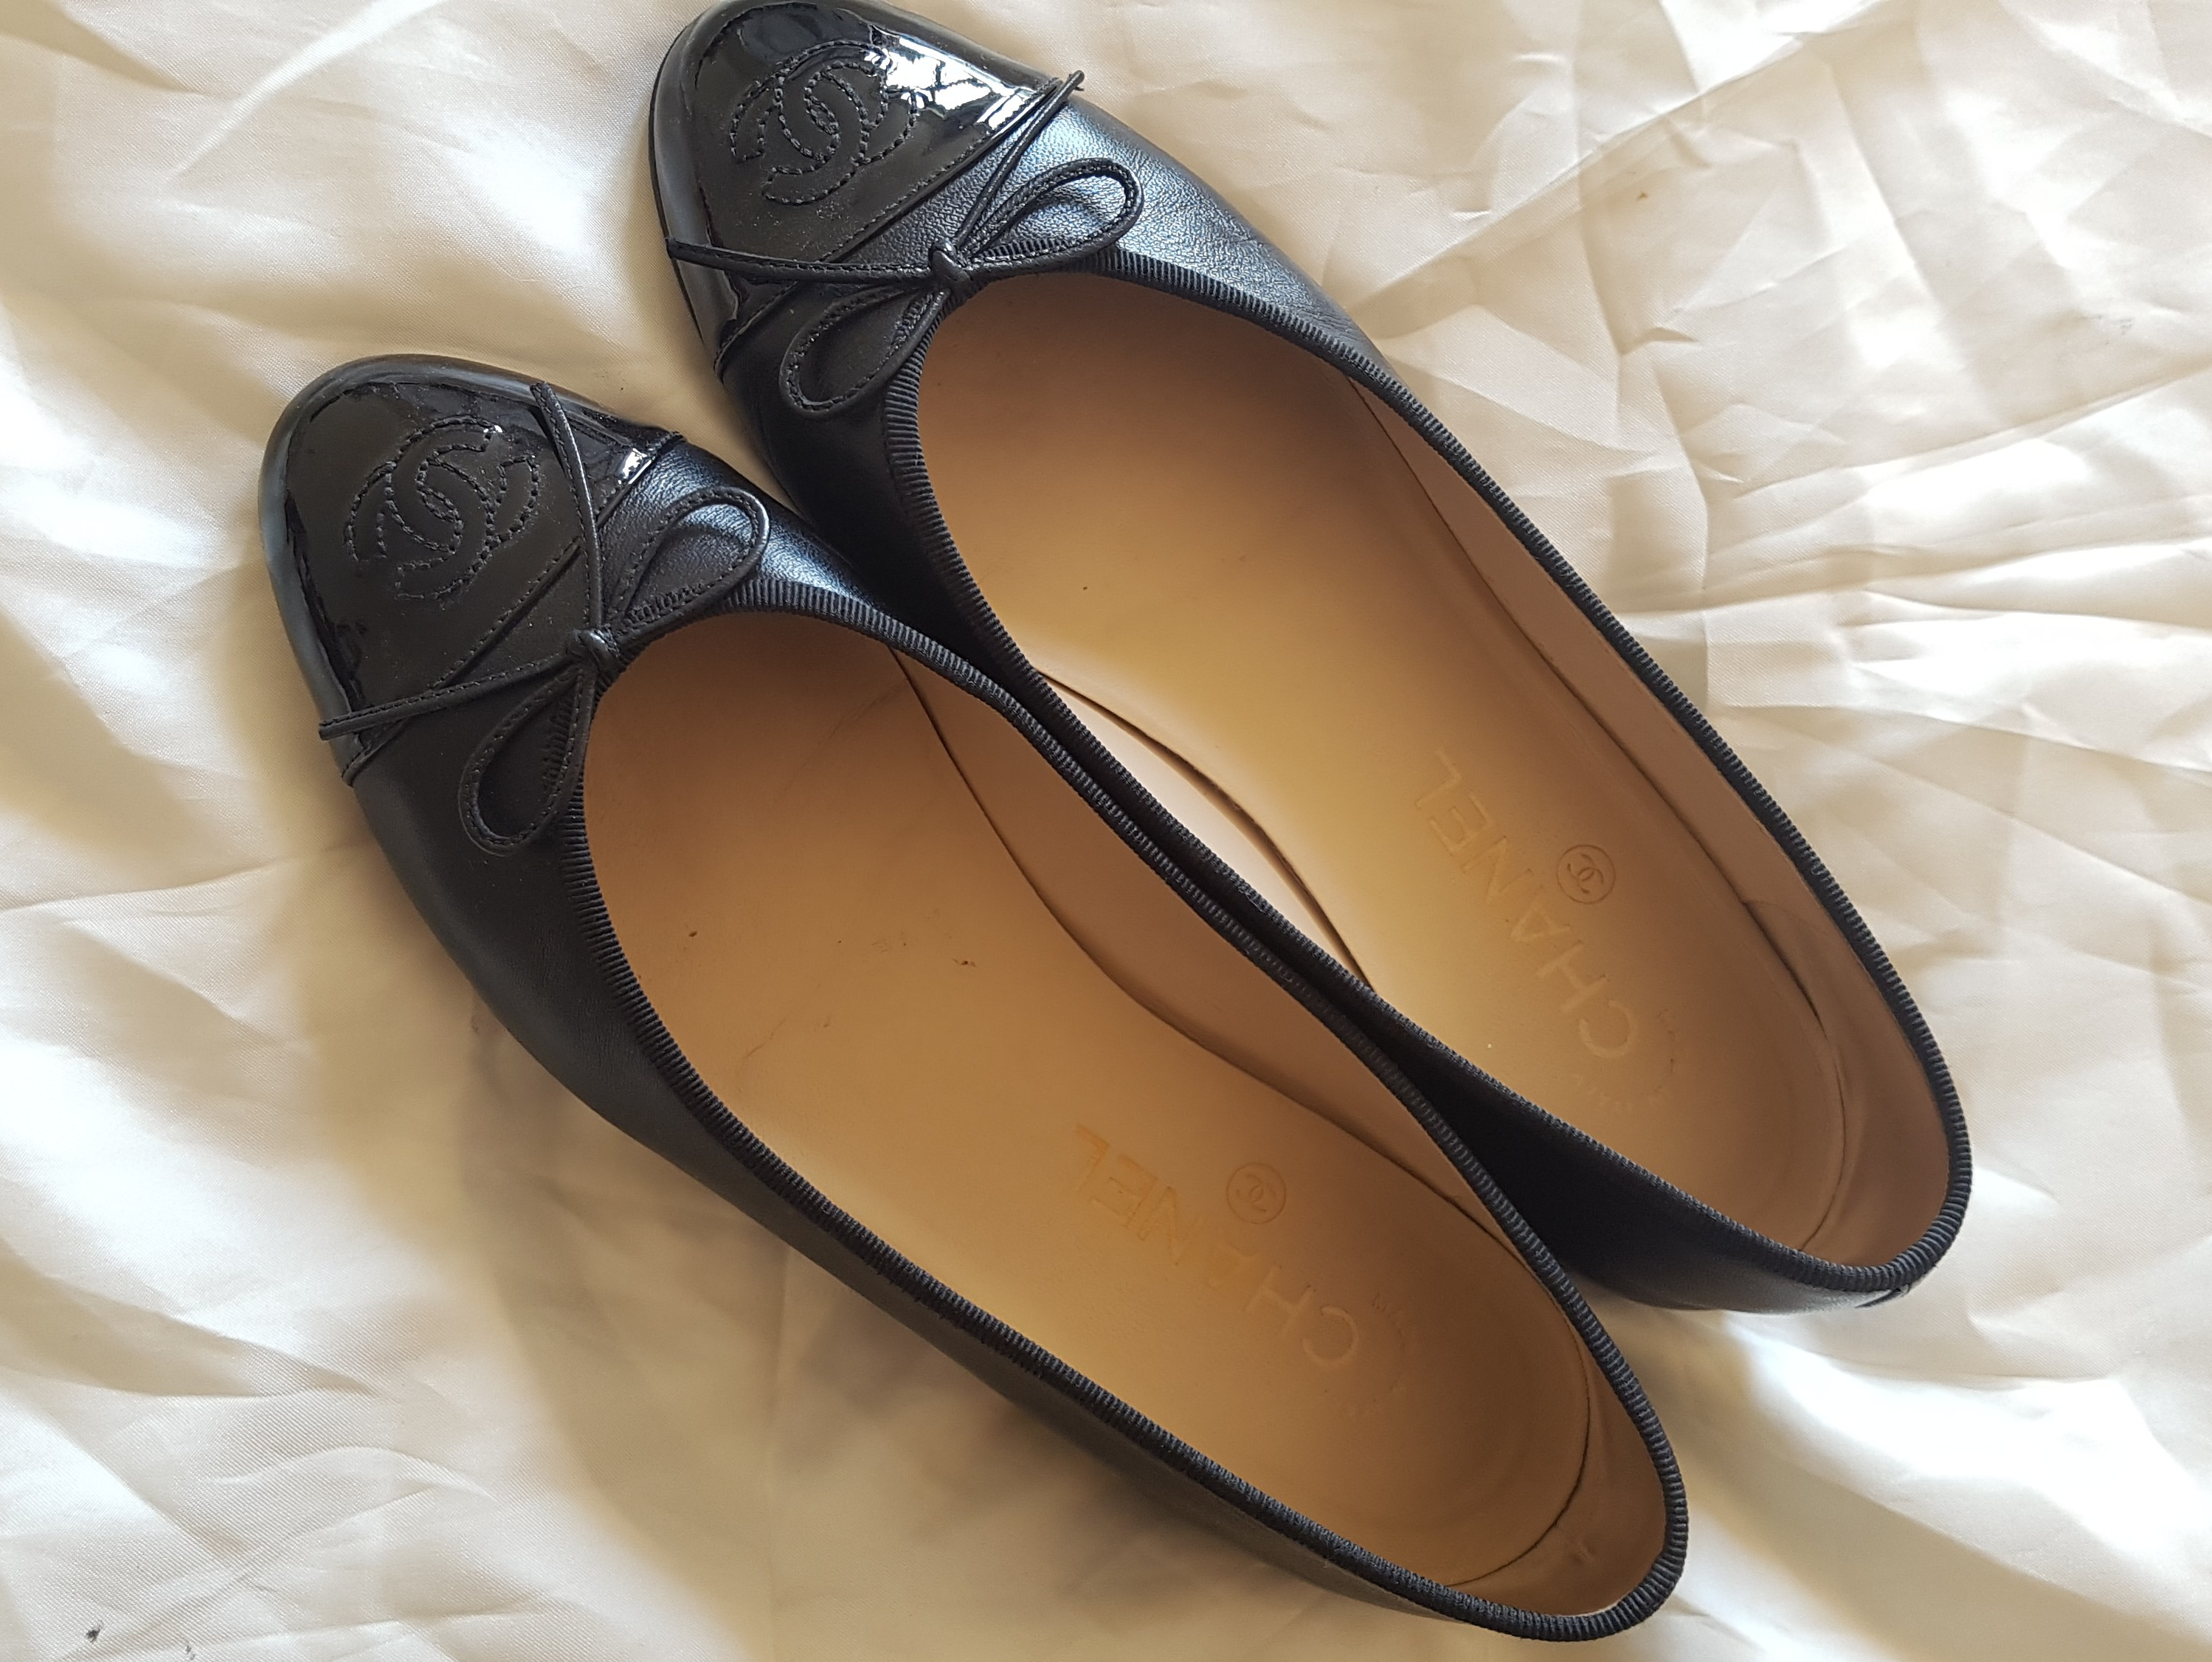 Review: Chanel Ballerina Flats in Black